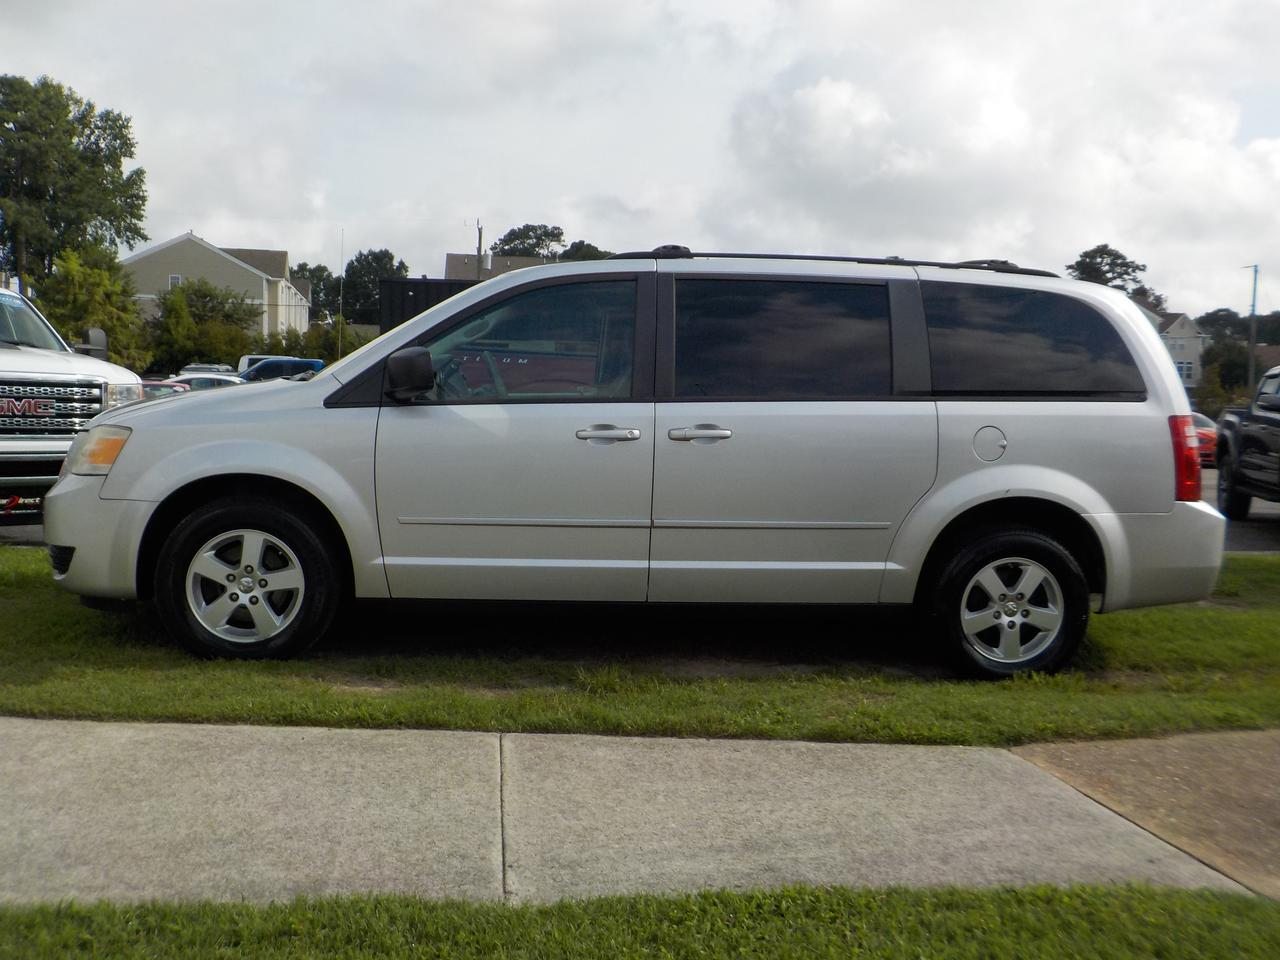 2010 DODGE GRAND CARAVAN SE, FRONT & REAR A/C, ROOF RACKS, CAPTAINS CHAIRS, REAR AIRBAGS, AUX PORT, 3RD ROW, CRUISE CONTROL! Virginia Beach VA